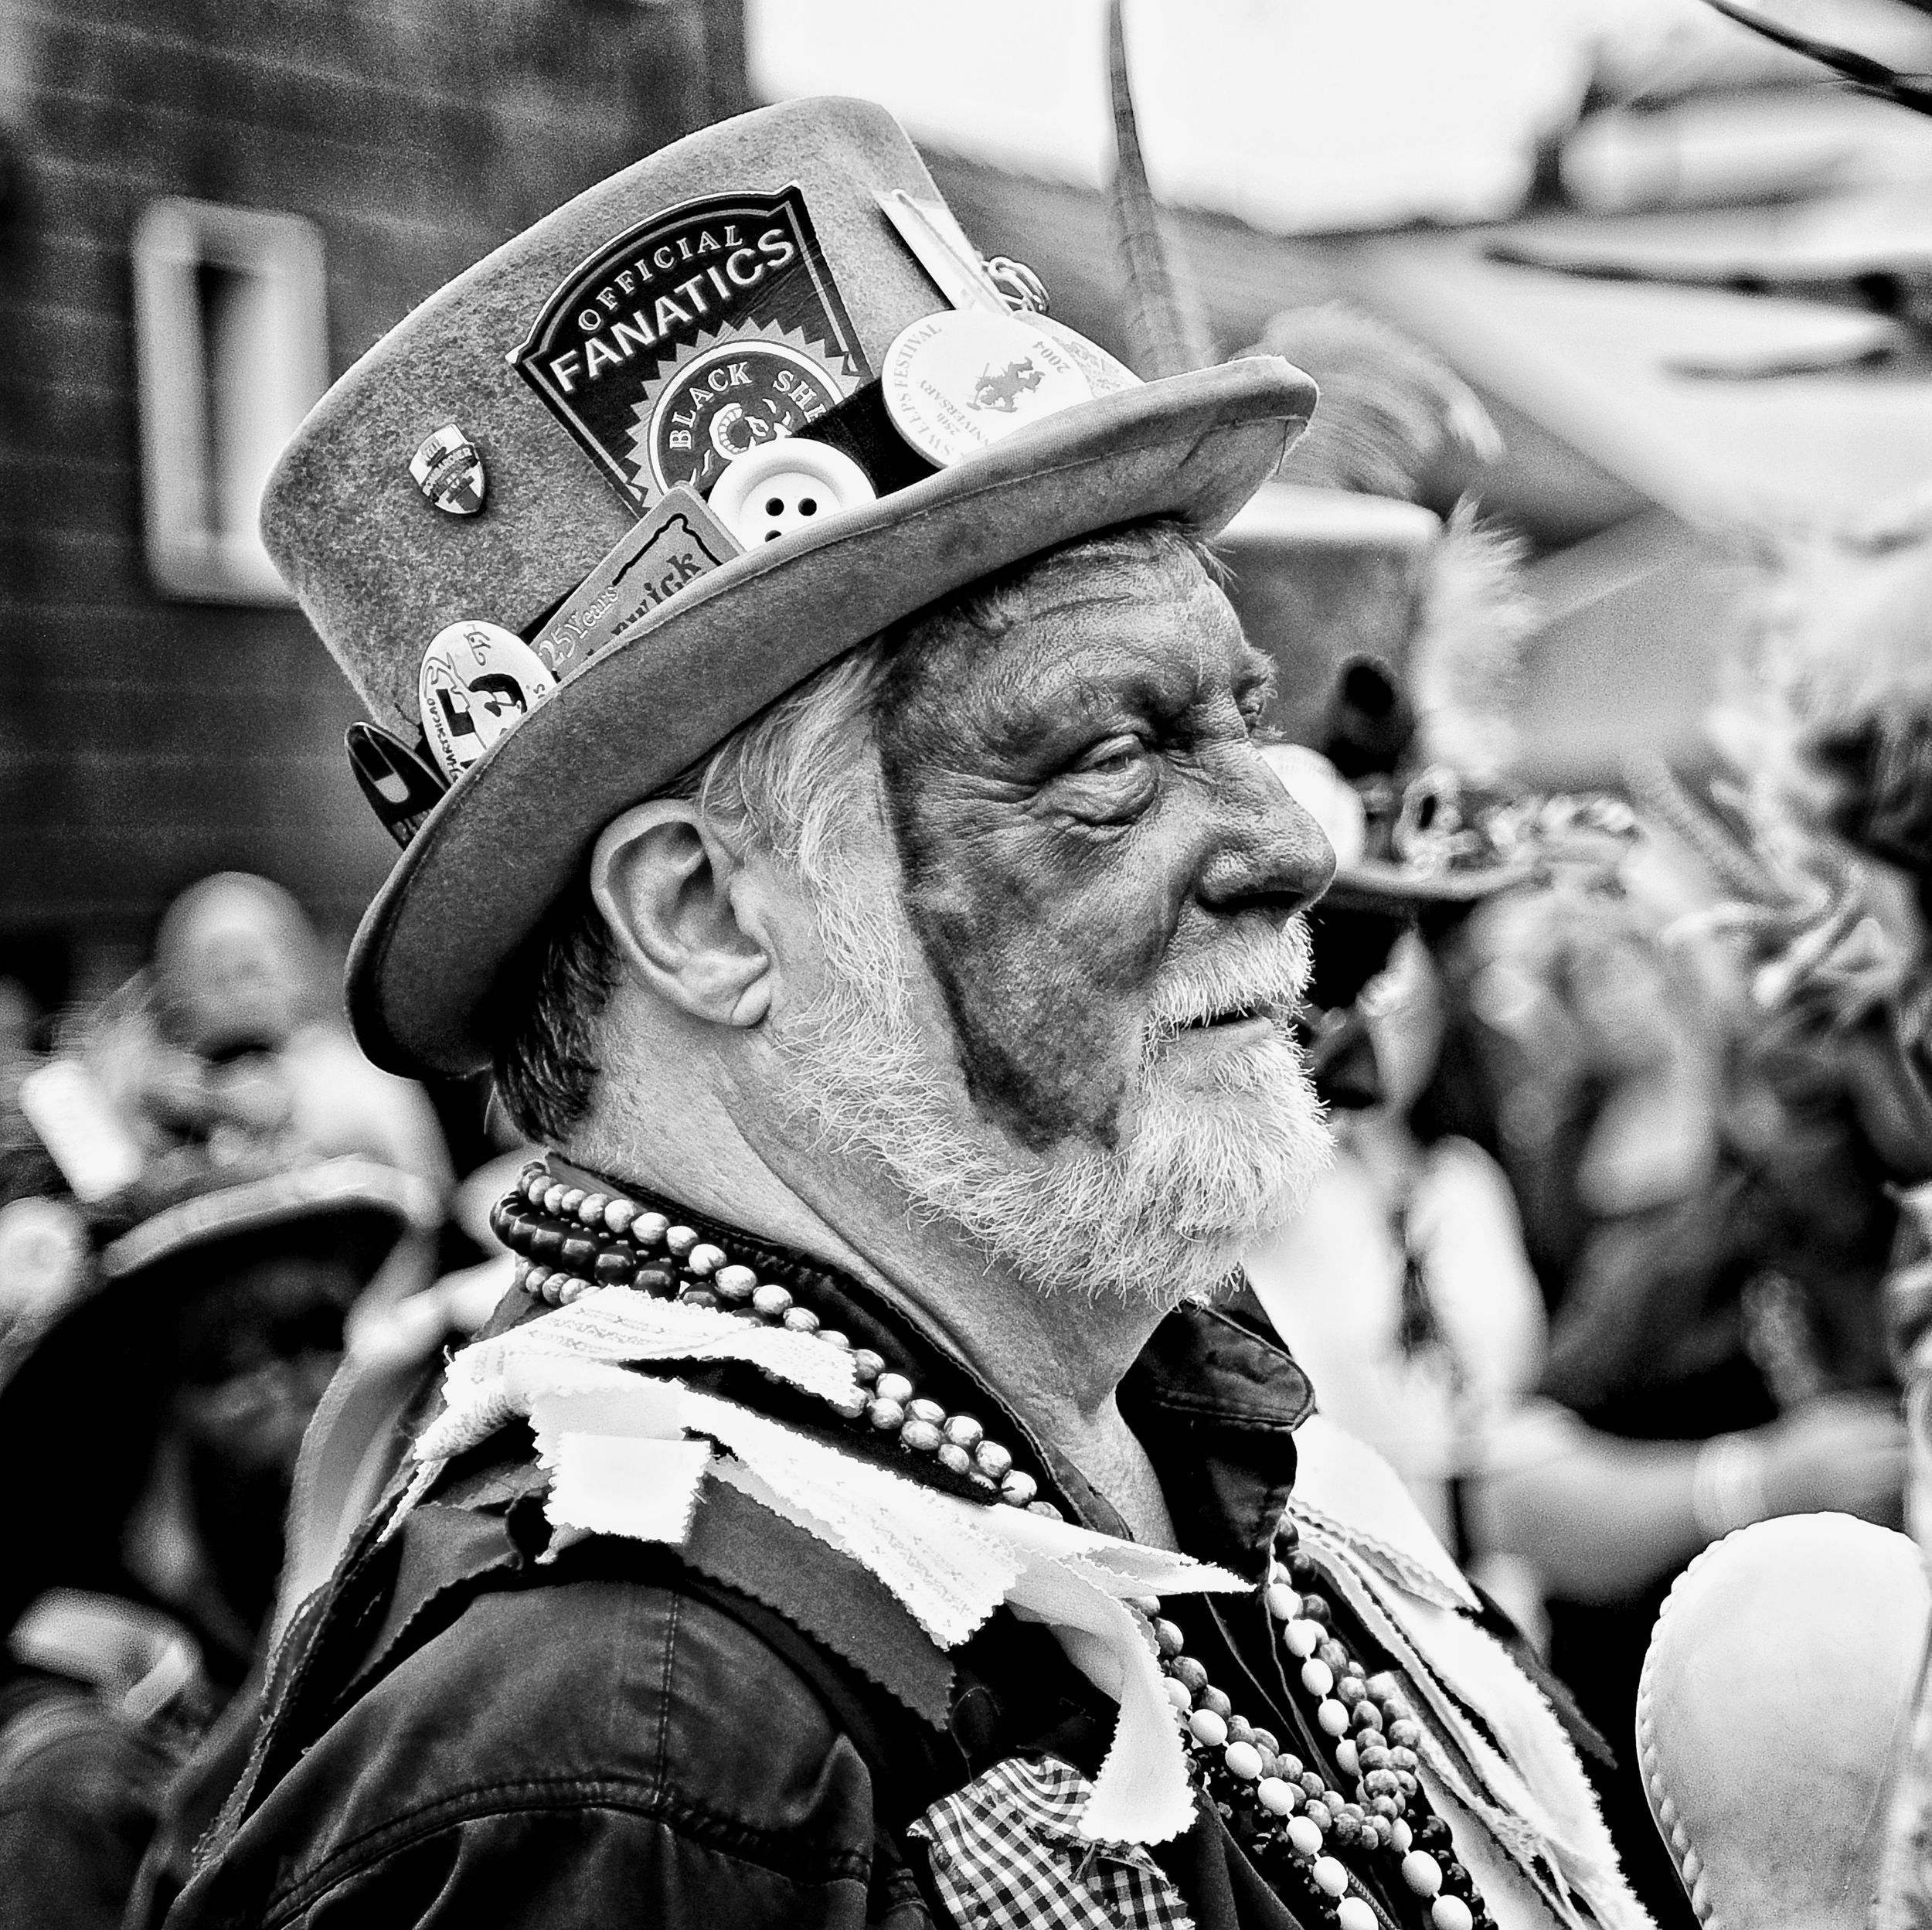 warwick folk festival black and white image of a male wearing a top hat with badges on it